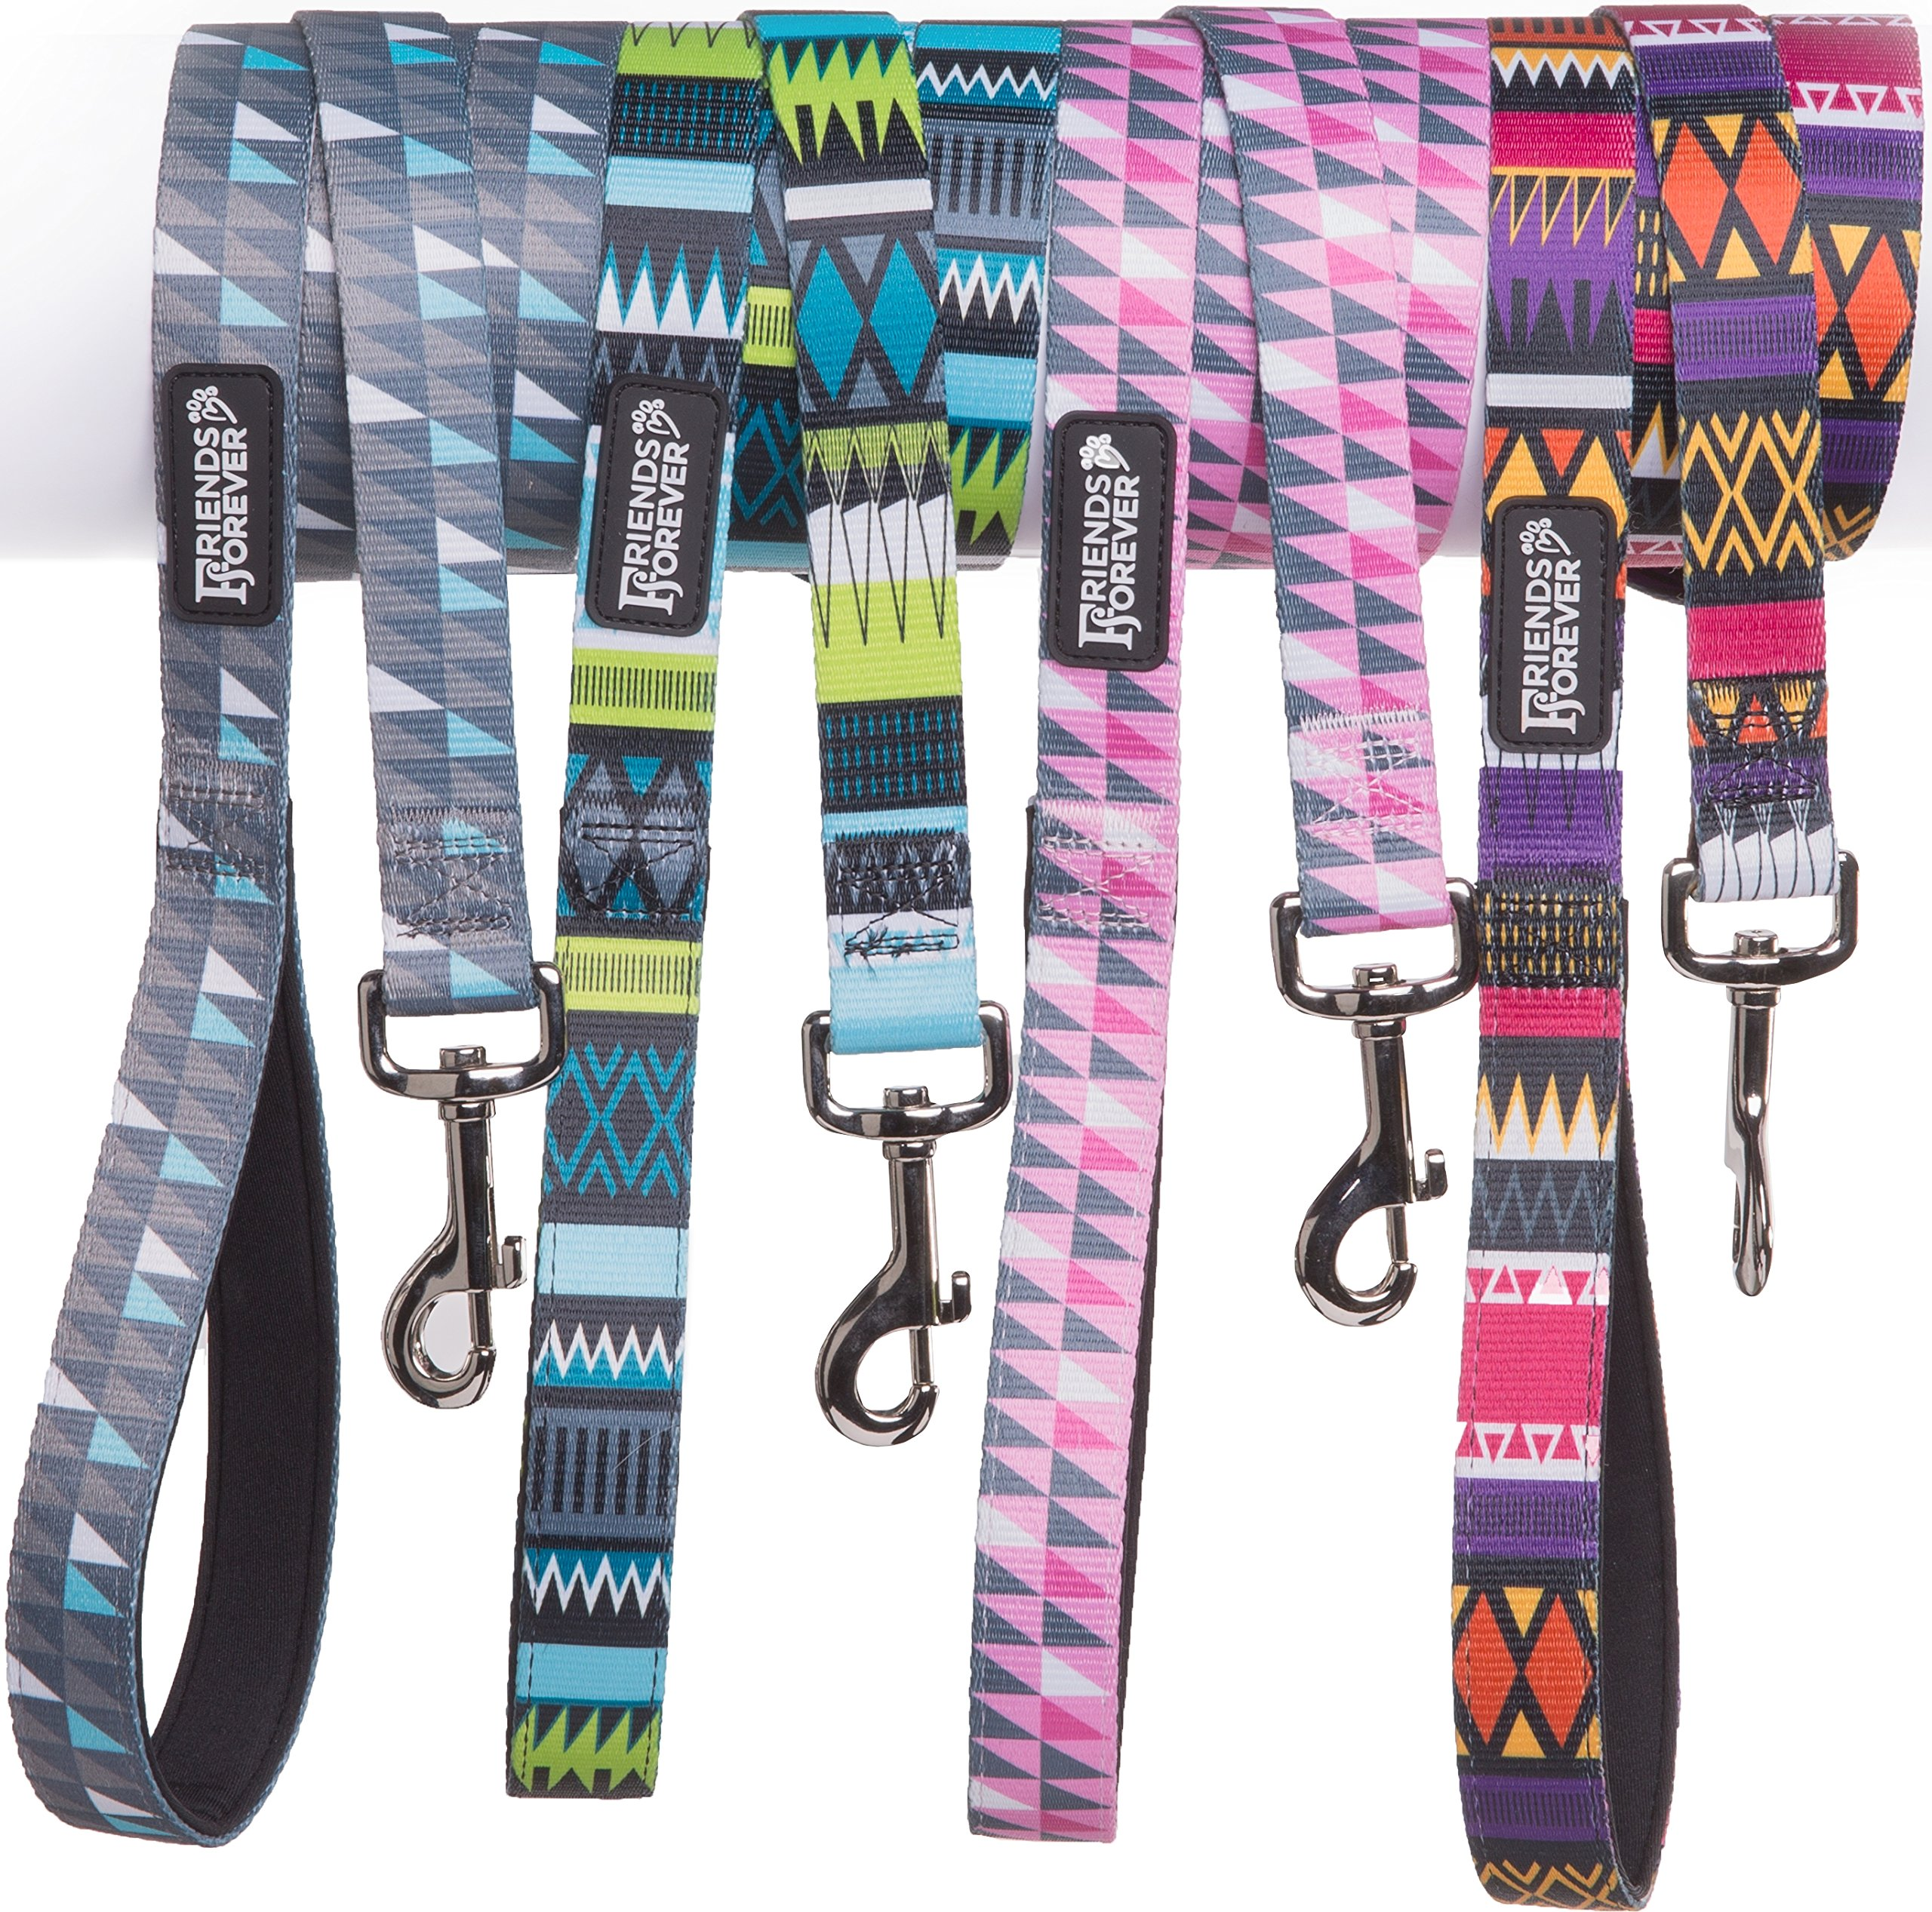 Friends Forever Durable Nylon Dog Leashes for Small Dogs to Large Dogs, Pattern Cat Leashes for Walking - Puppy Leash 5 Feet Long for Dogs & Cats, Tribal Teal